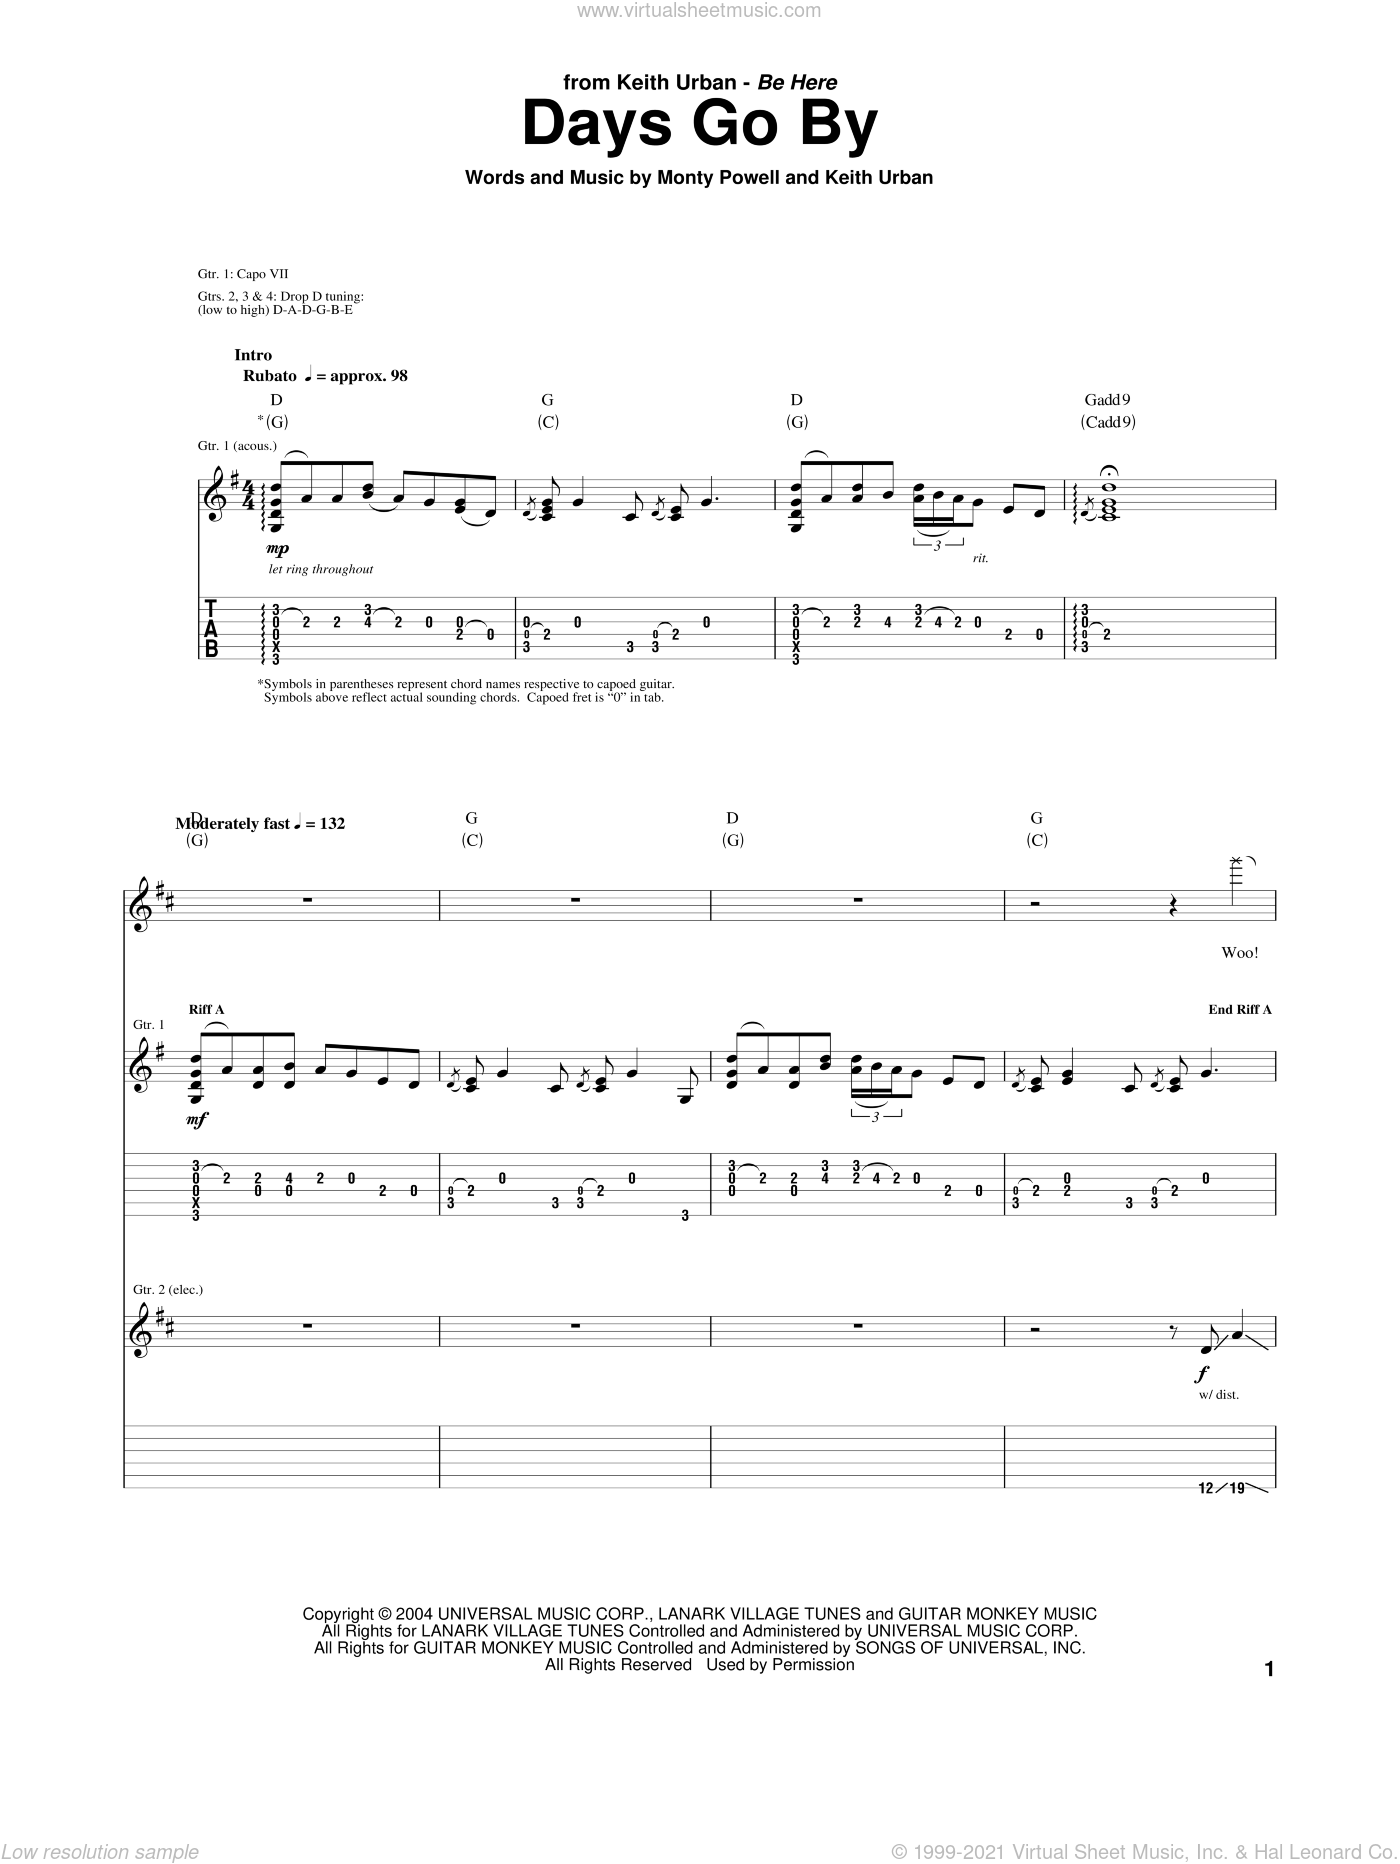 Days Go By sheet music for guitar (tablature) by Monty Powell